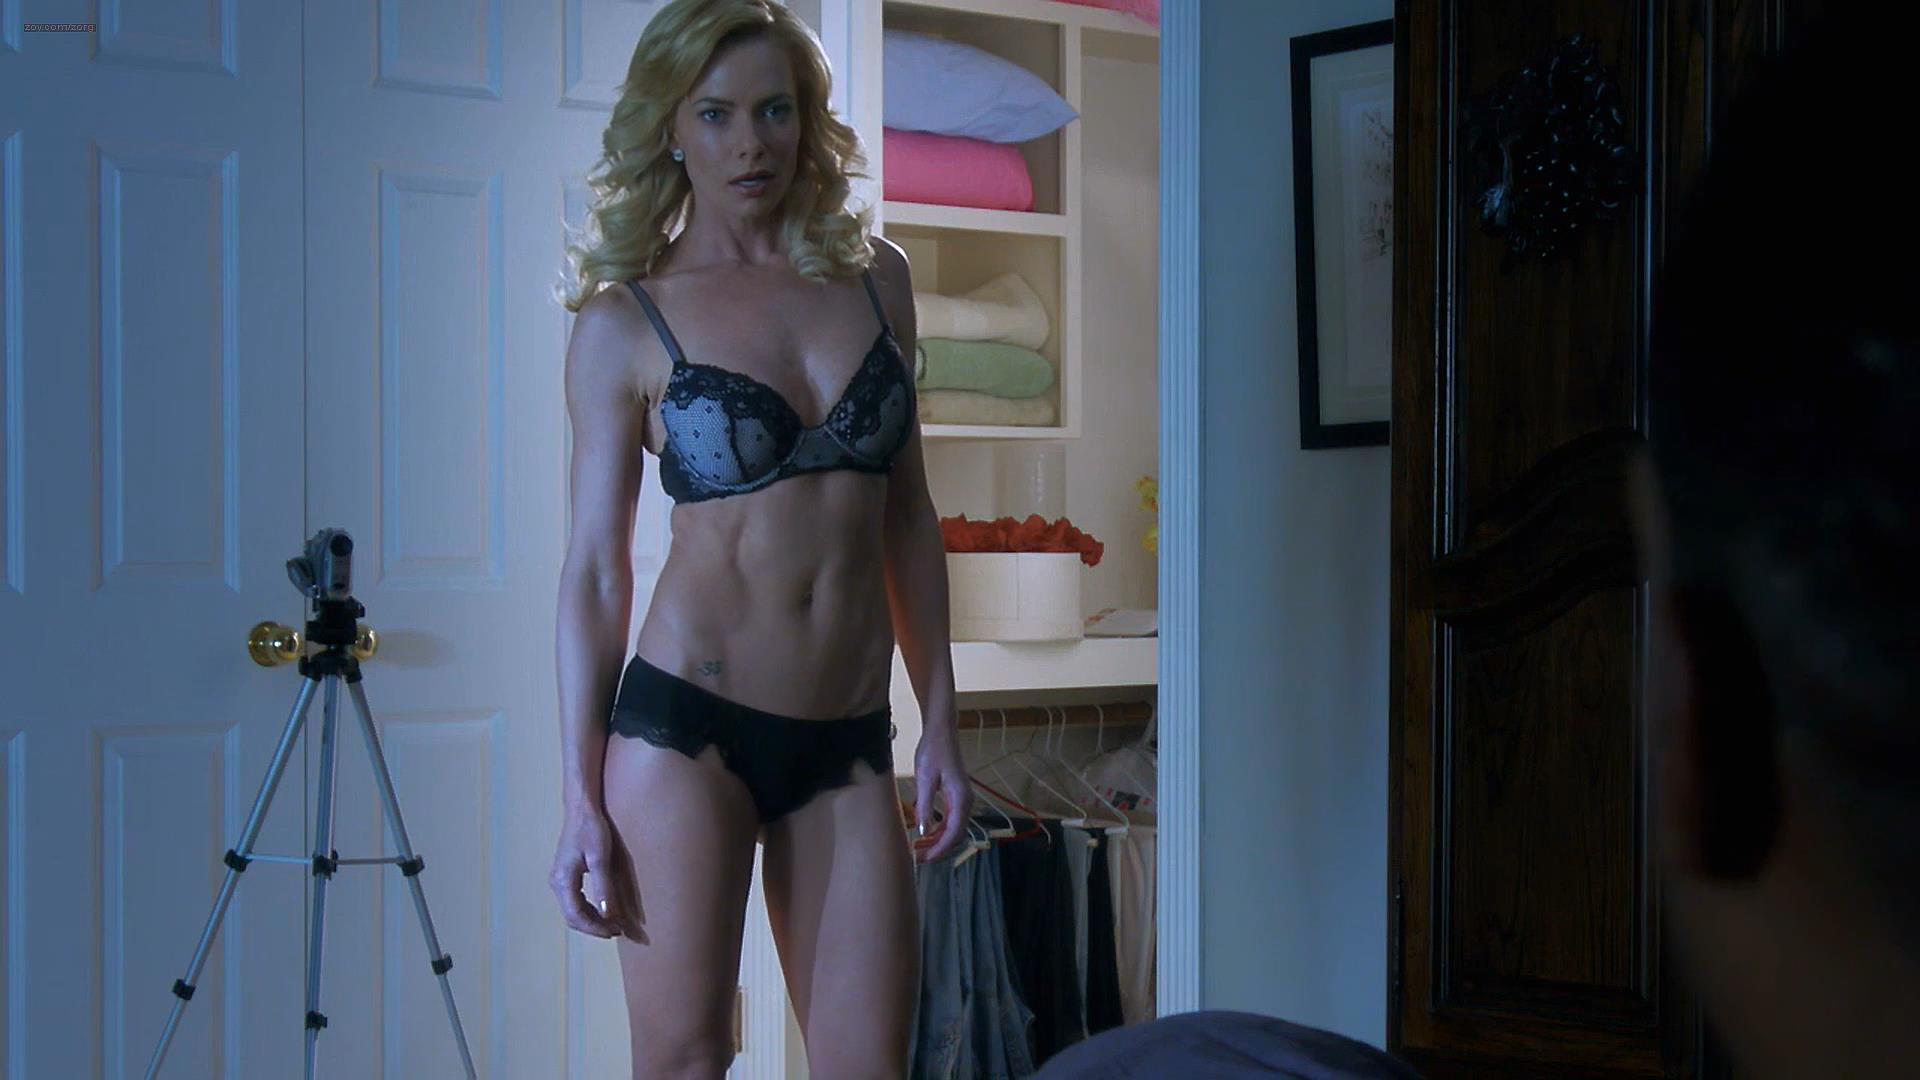 Jaime Pressly hot and sexy in lingerie – A Hunted House 2 (2014) hd1080p